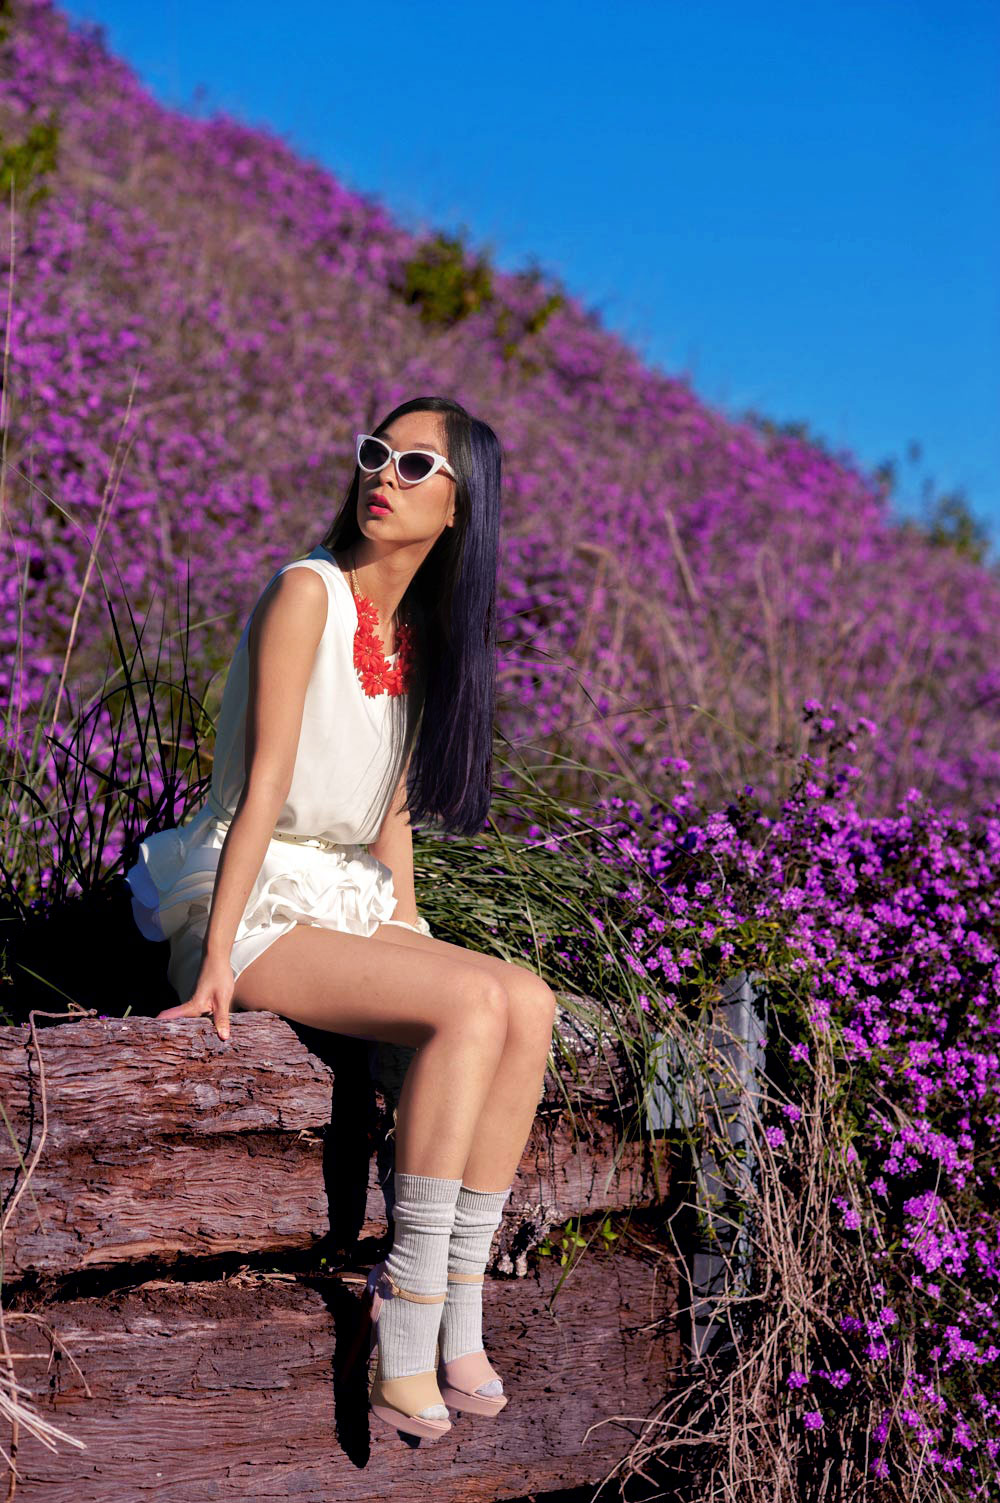 field of purple flowers, flower fashion shoot